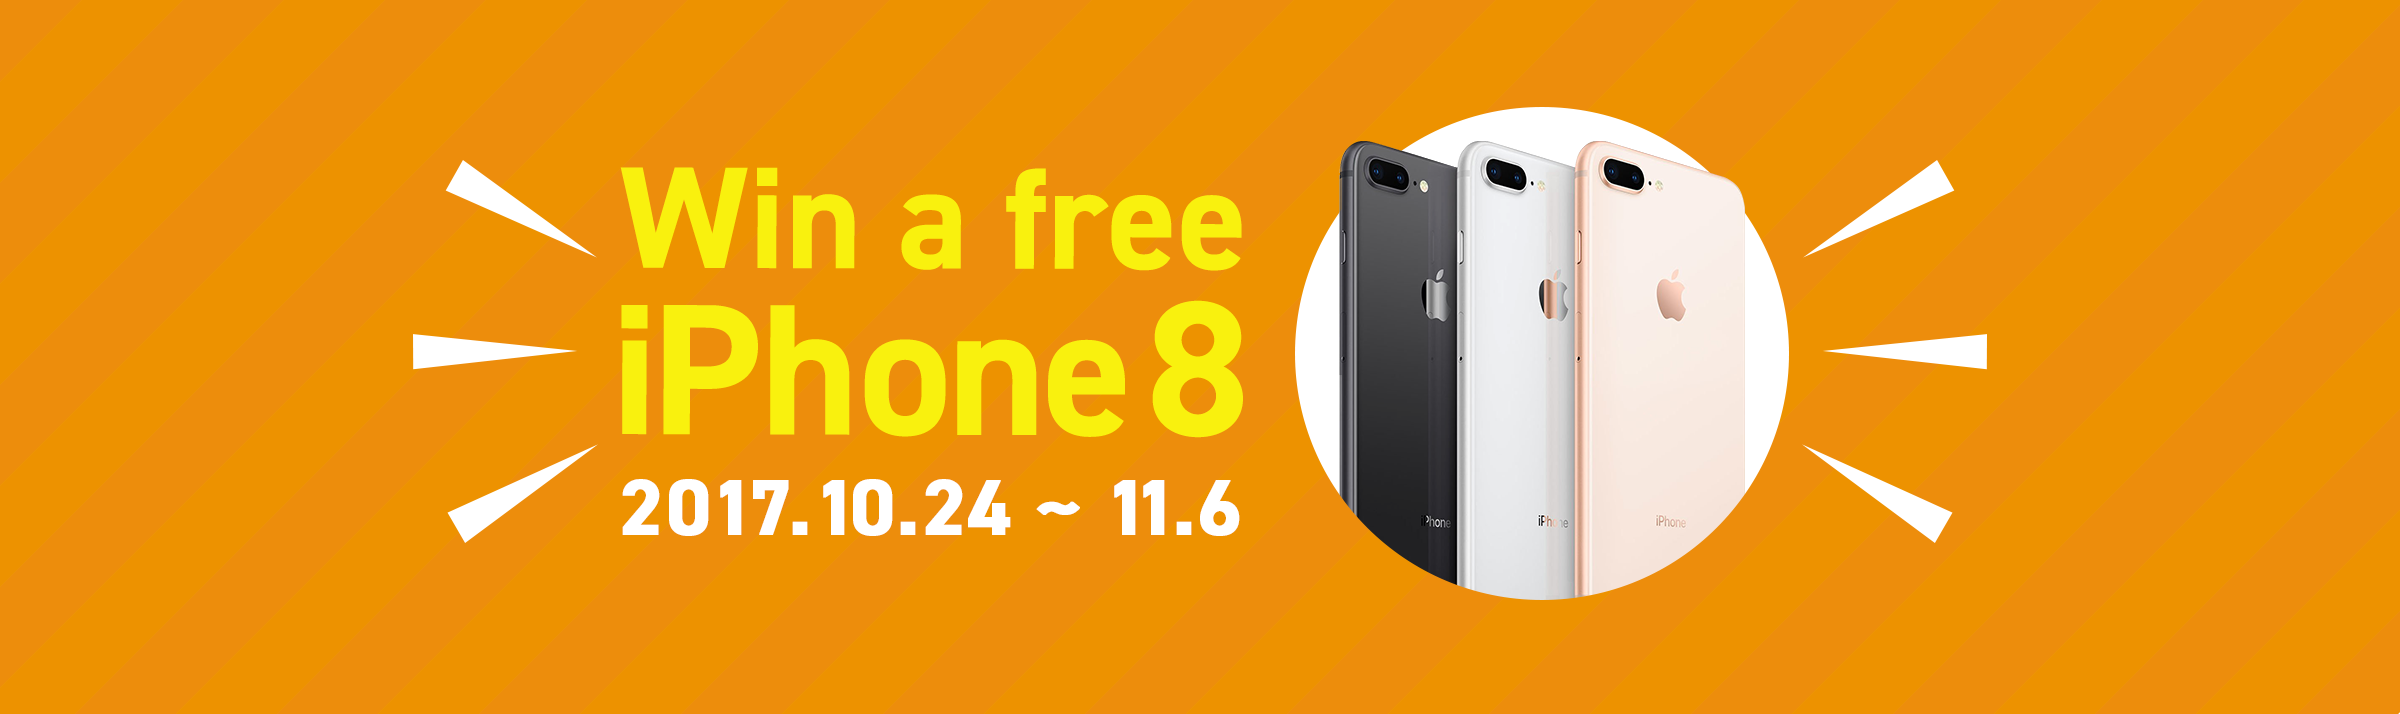 iPhone 8 Giveaway Campaign